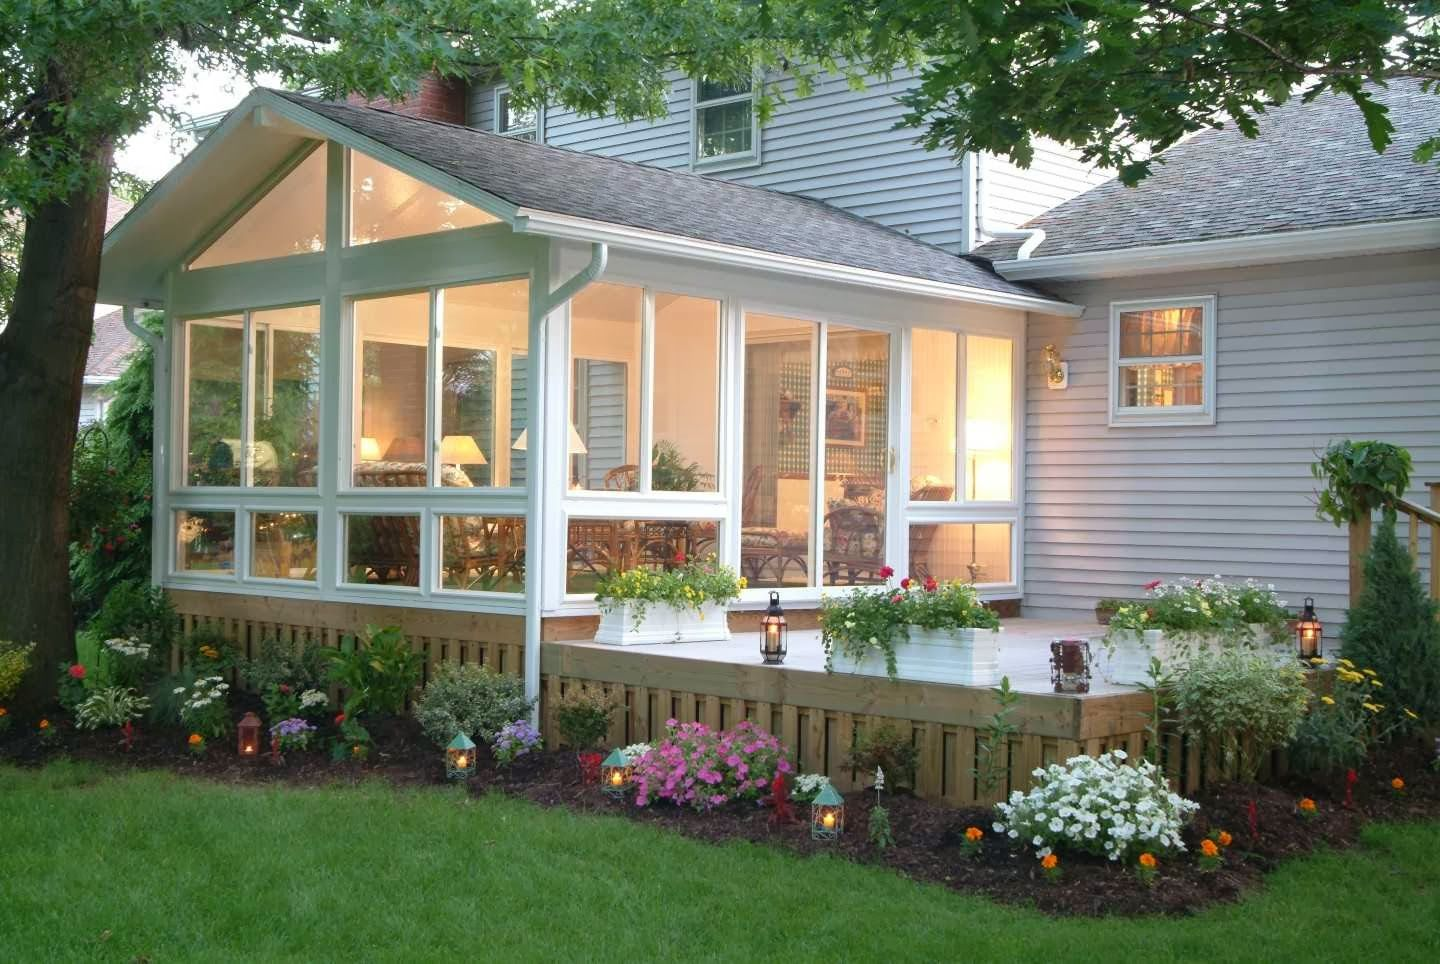 Pin by Kristen Marie on Home goals  Pinterest  Porch Sunroom